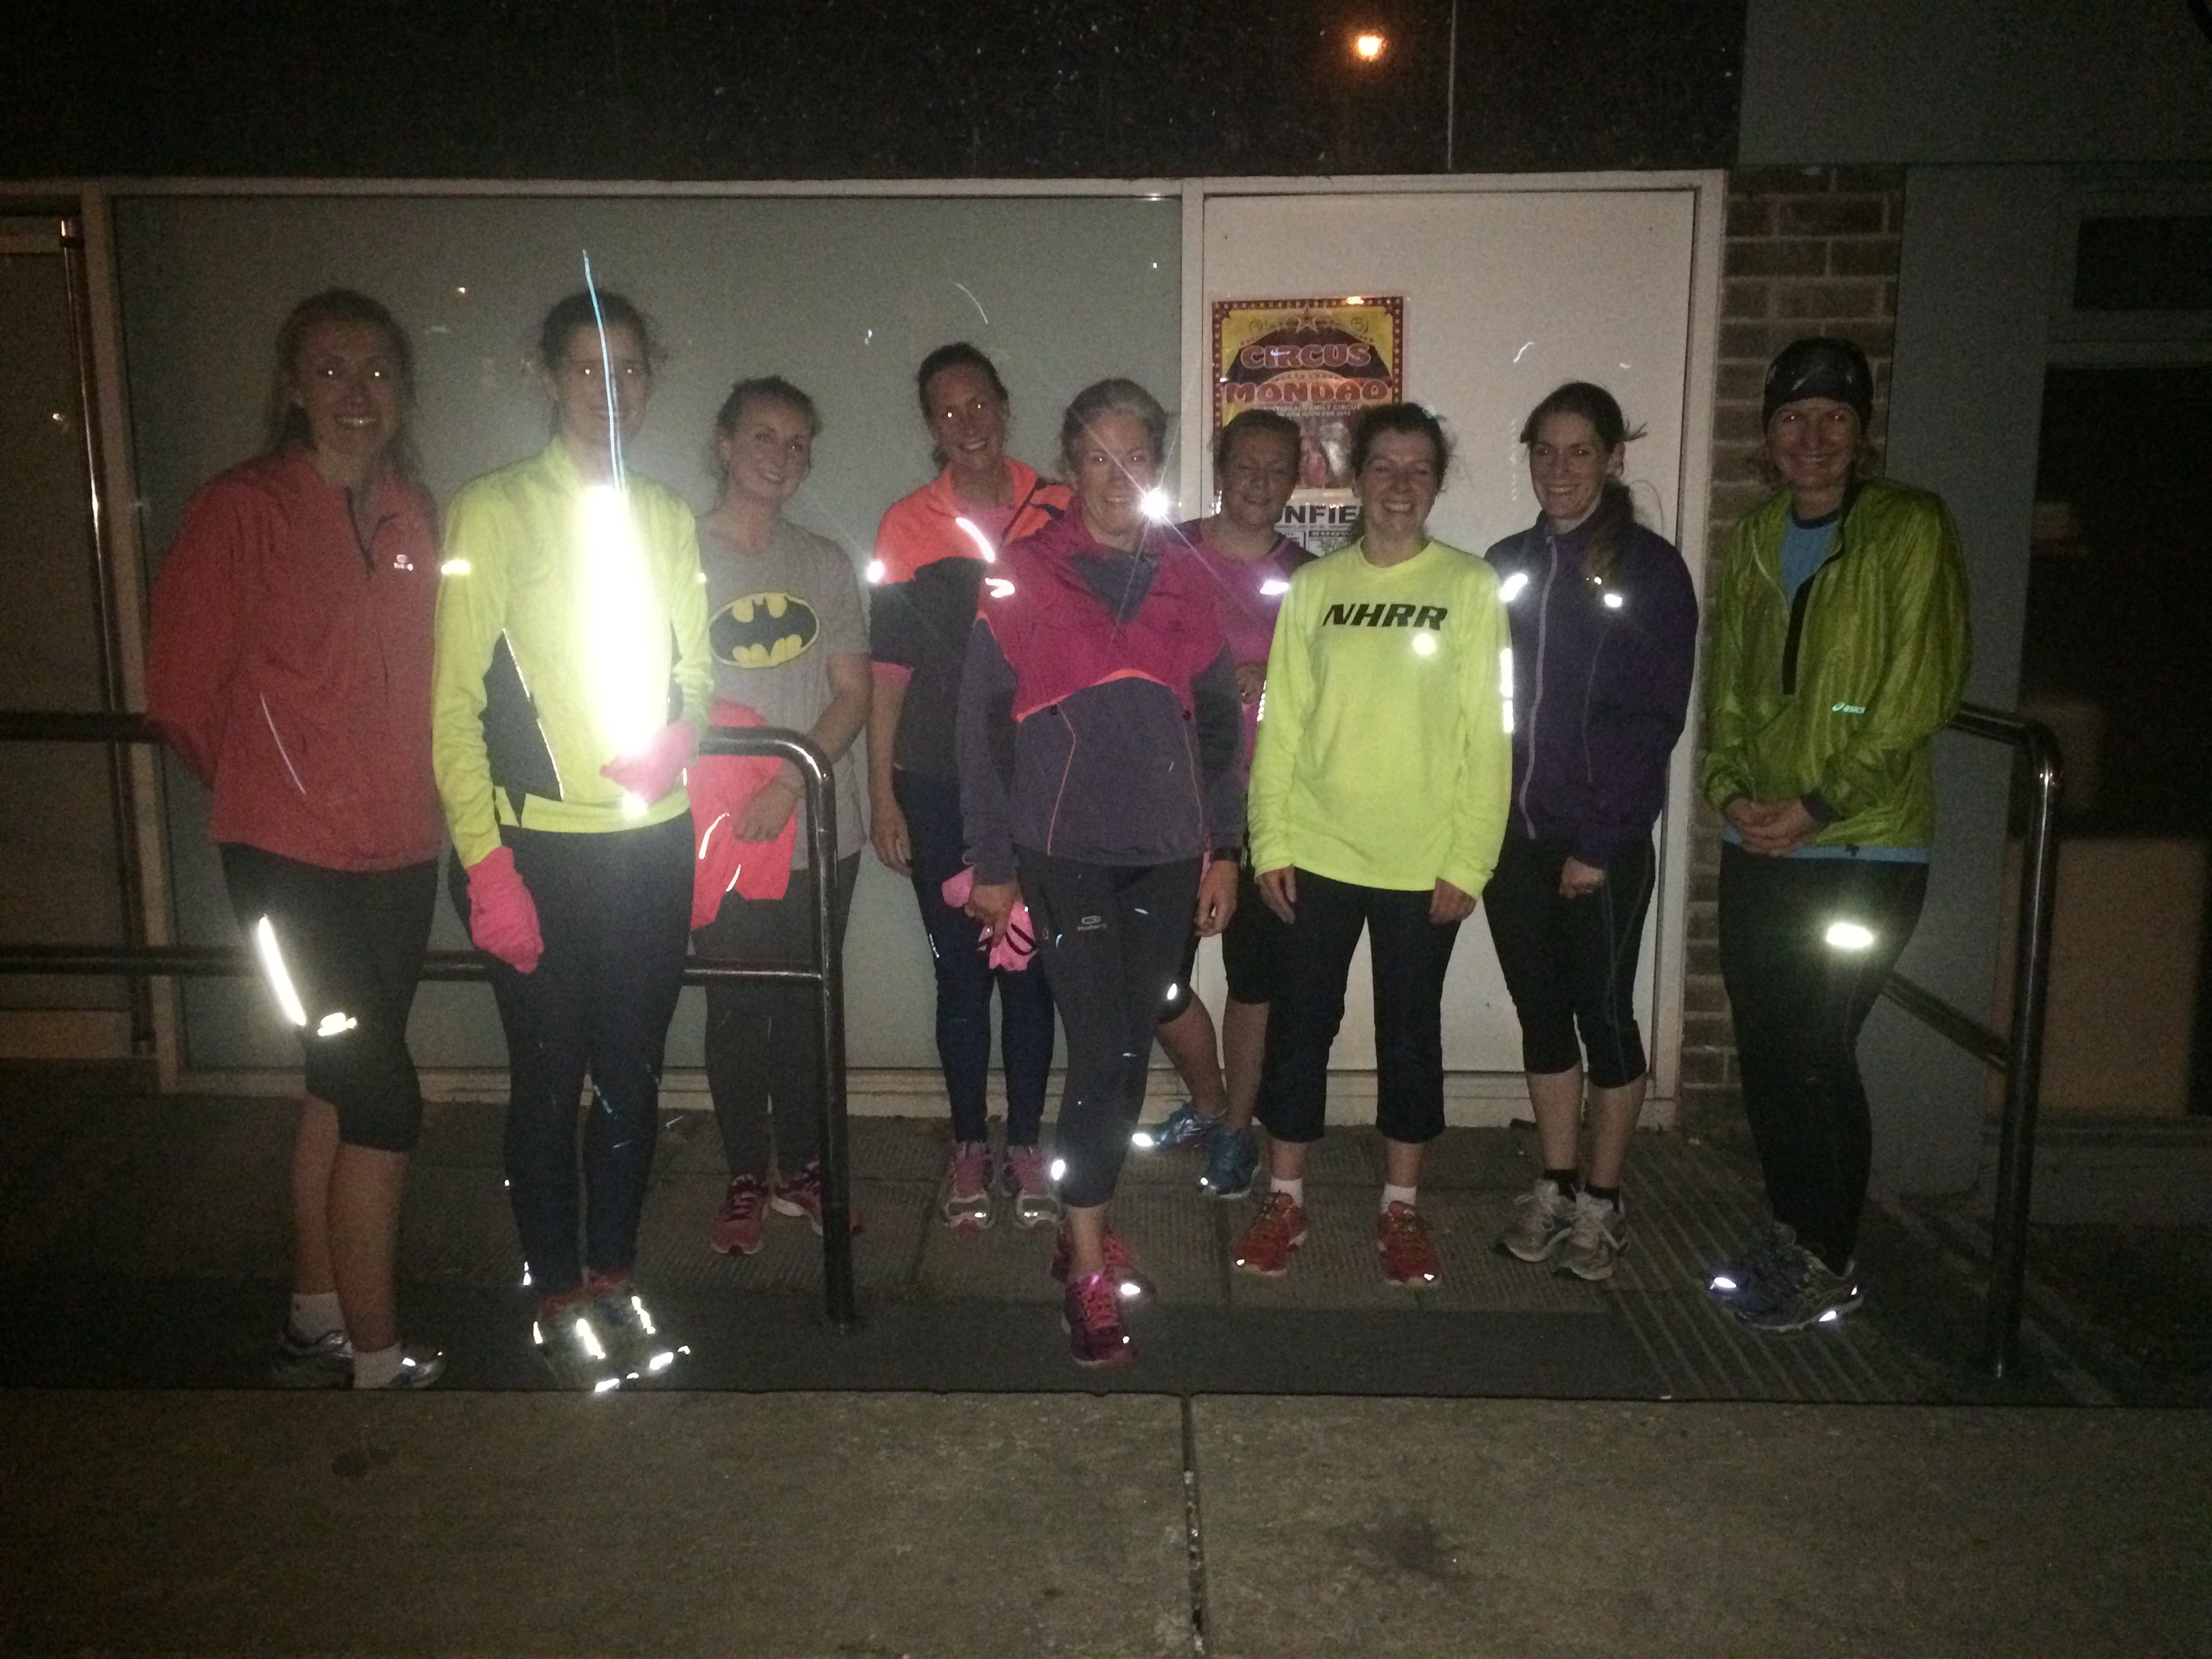 Dore running group meet on Wednesdays outside Hallamshire Osteopathy Dore at 7pm